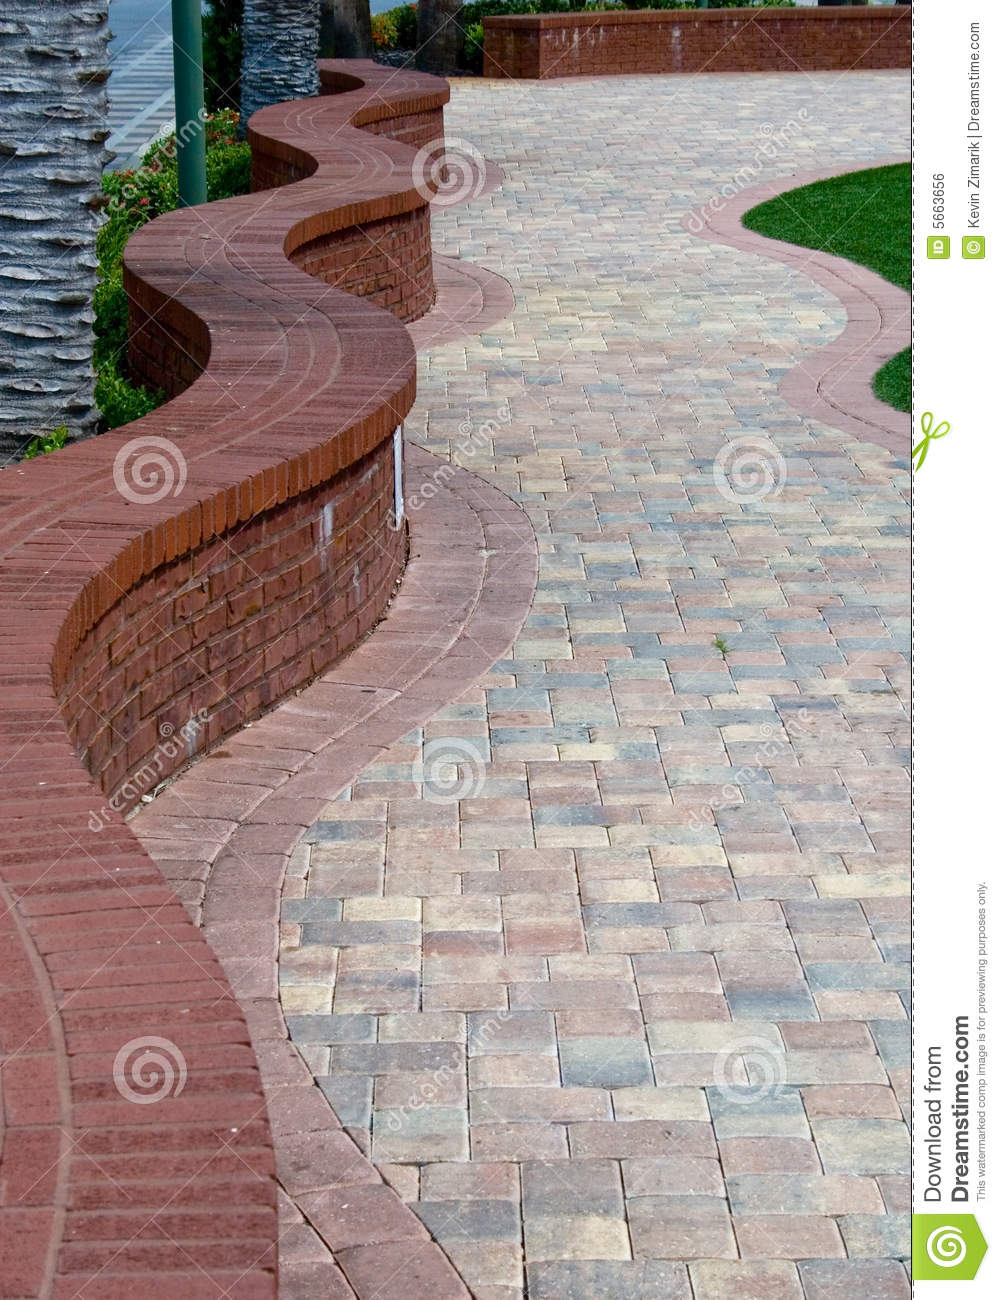 Brick pathway stock photo image of vertical snaking for Borde para jardin